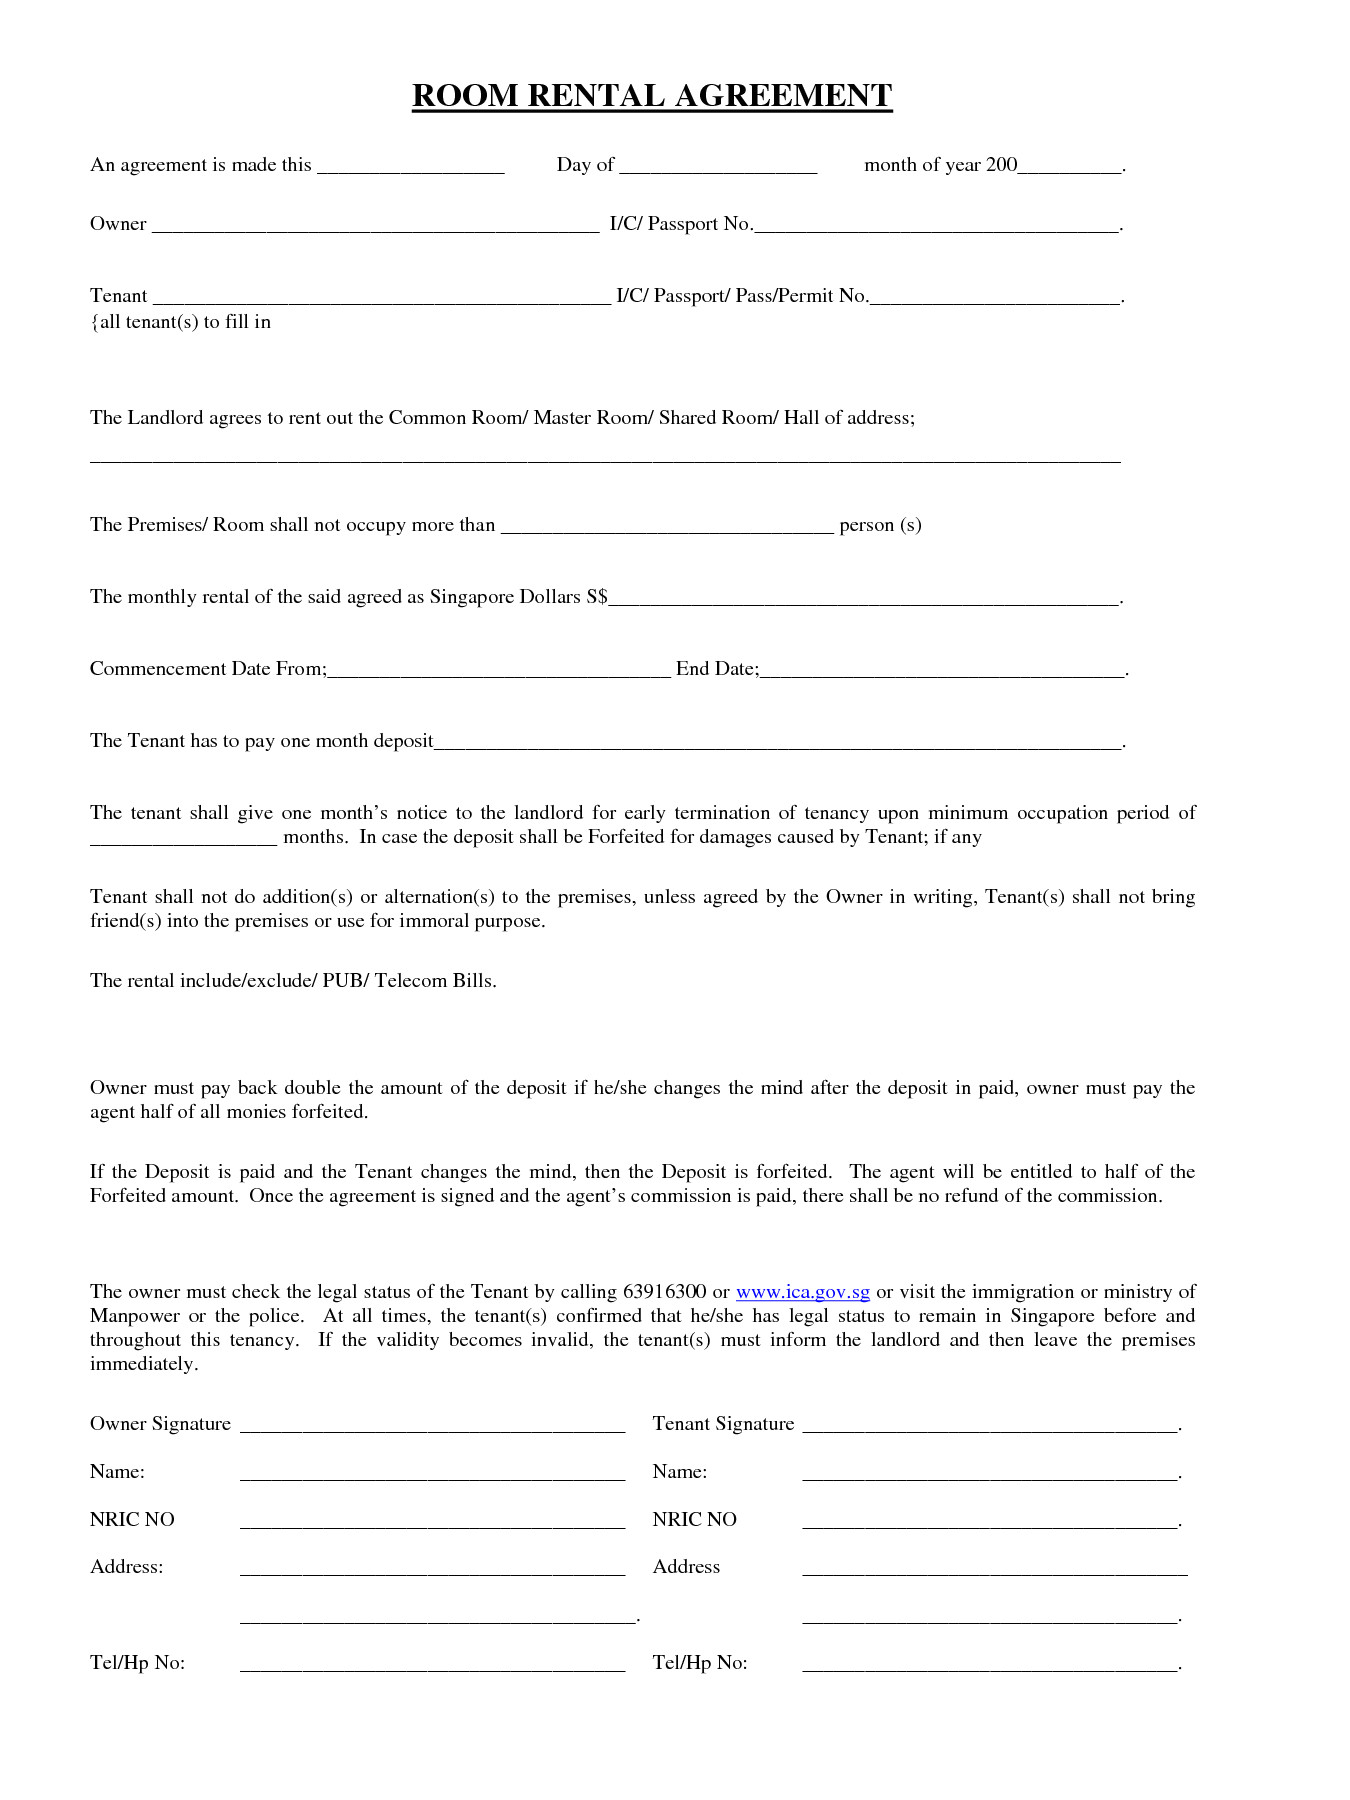 House Rental Contract Template Uk Pin by Vanessa Melendez On Vanessa In 2019 Rental